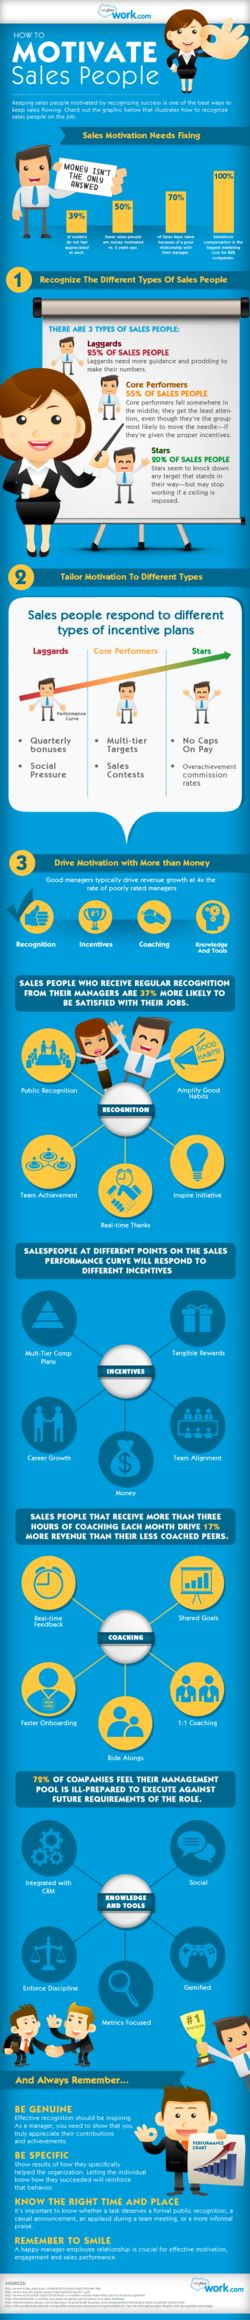 Try these great tips on motivating your sales team.